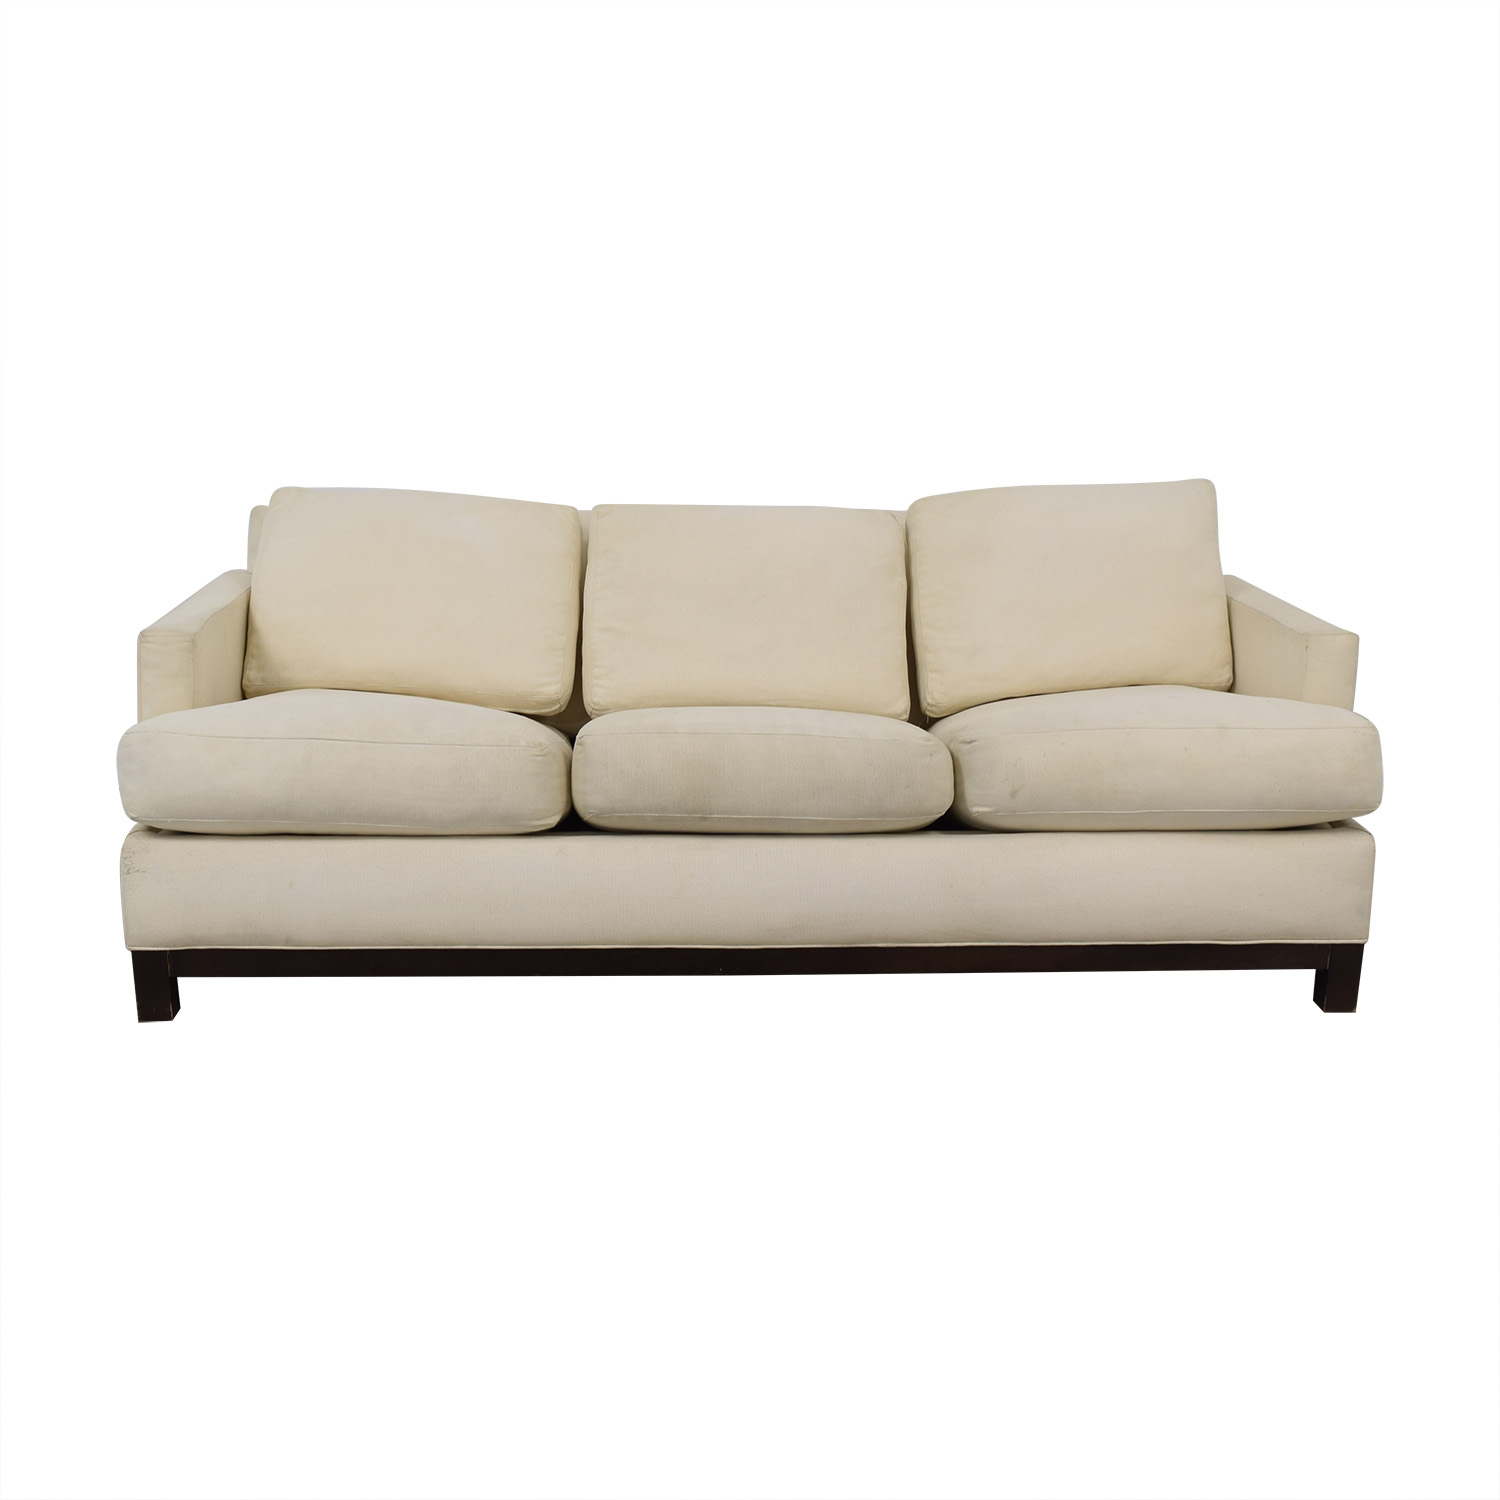 Rowe Furniture Rowe Furniture Queen Sleeper Sofa nyc